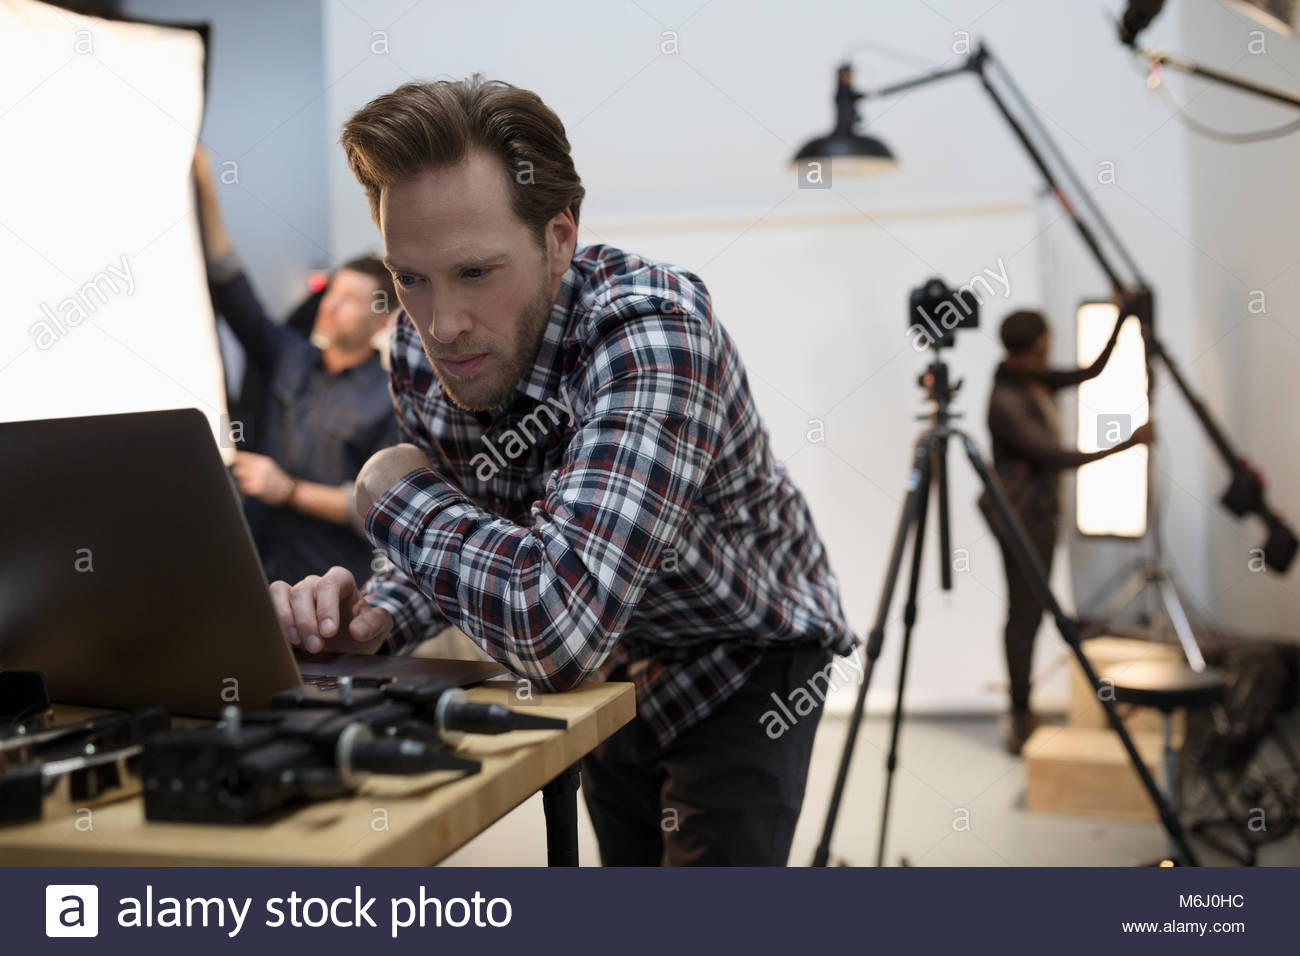 Male production manager using laptop at photo shoot in studio - Stock Image